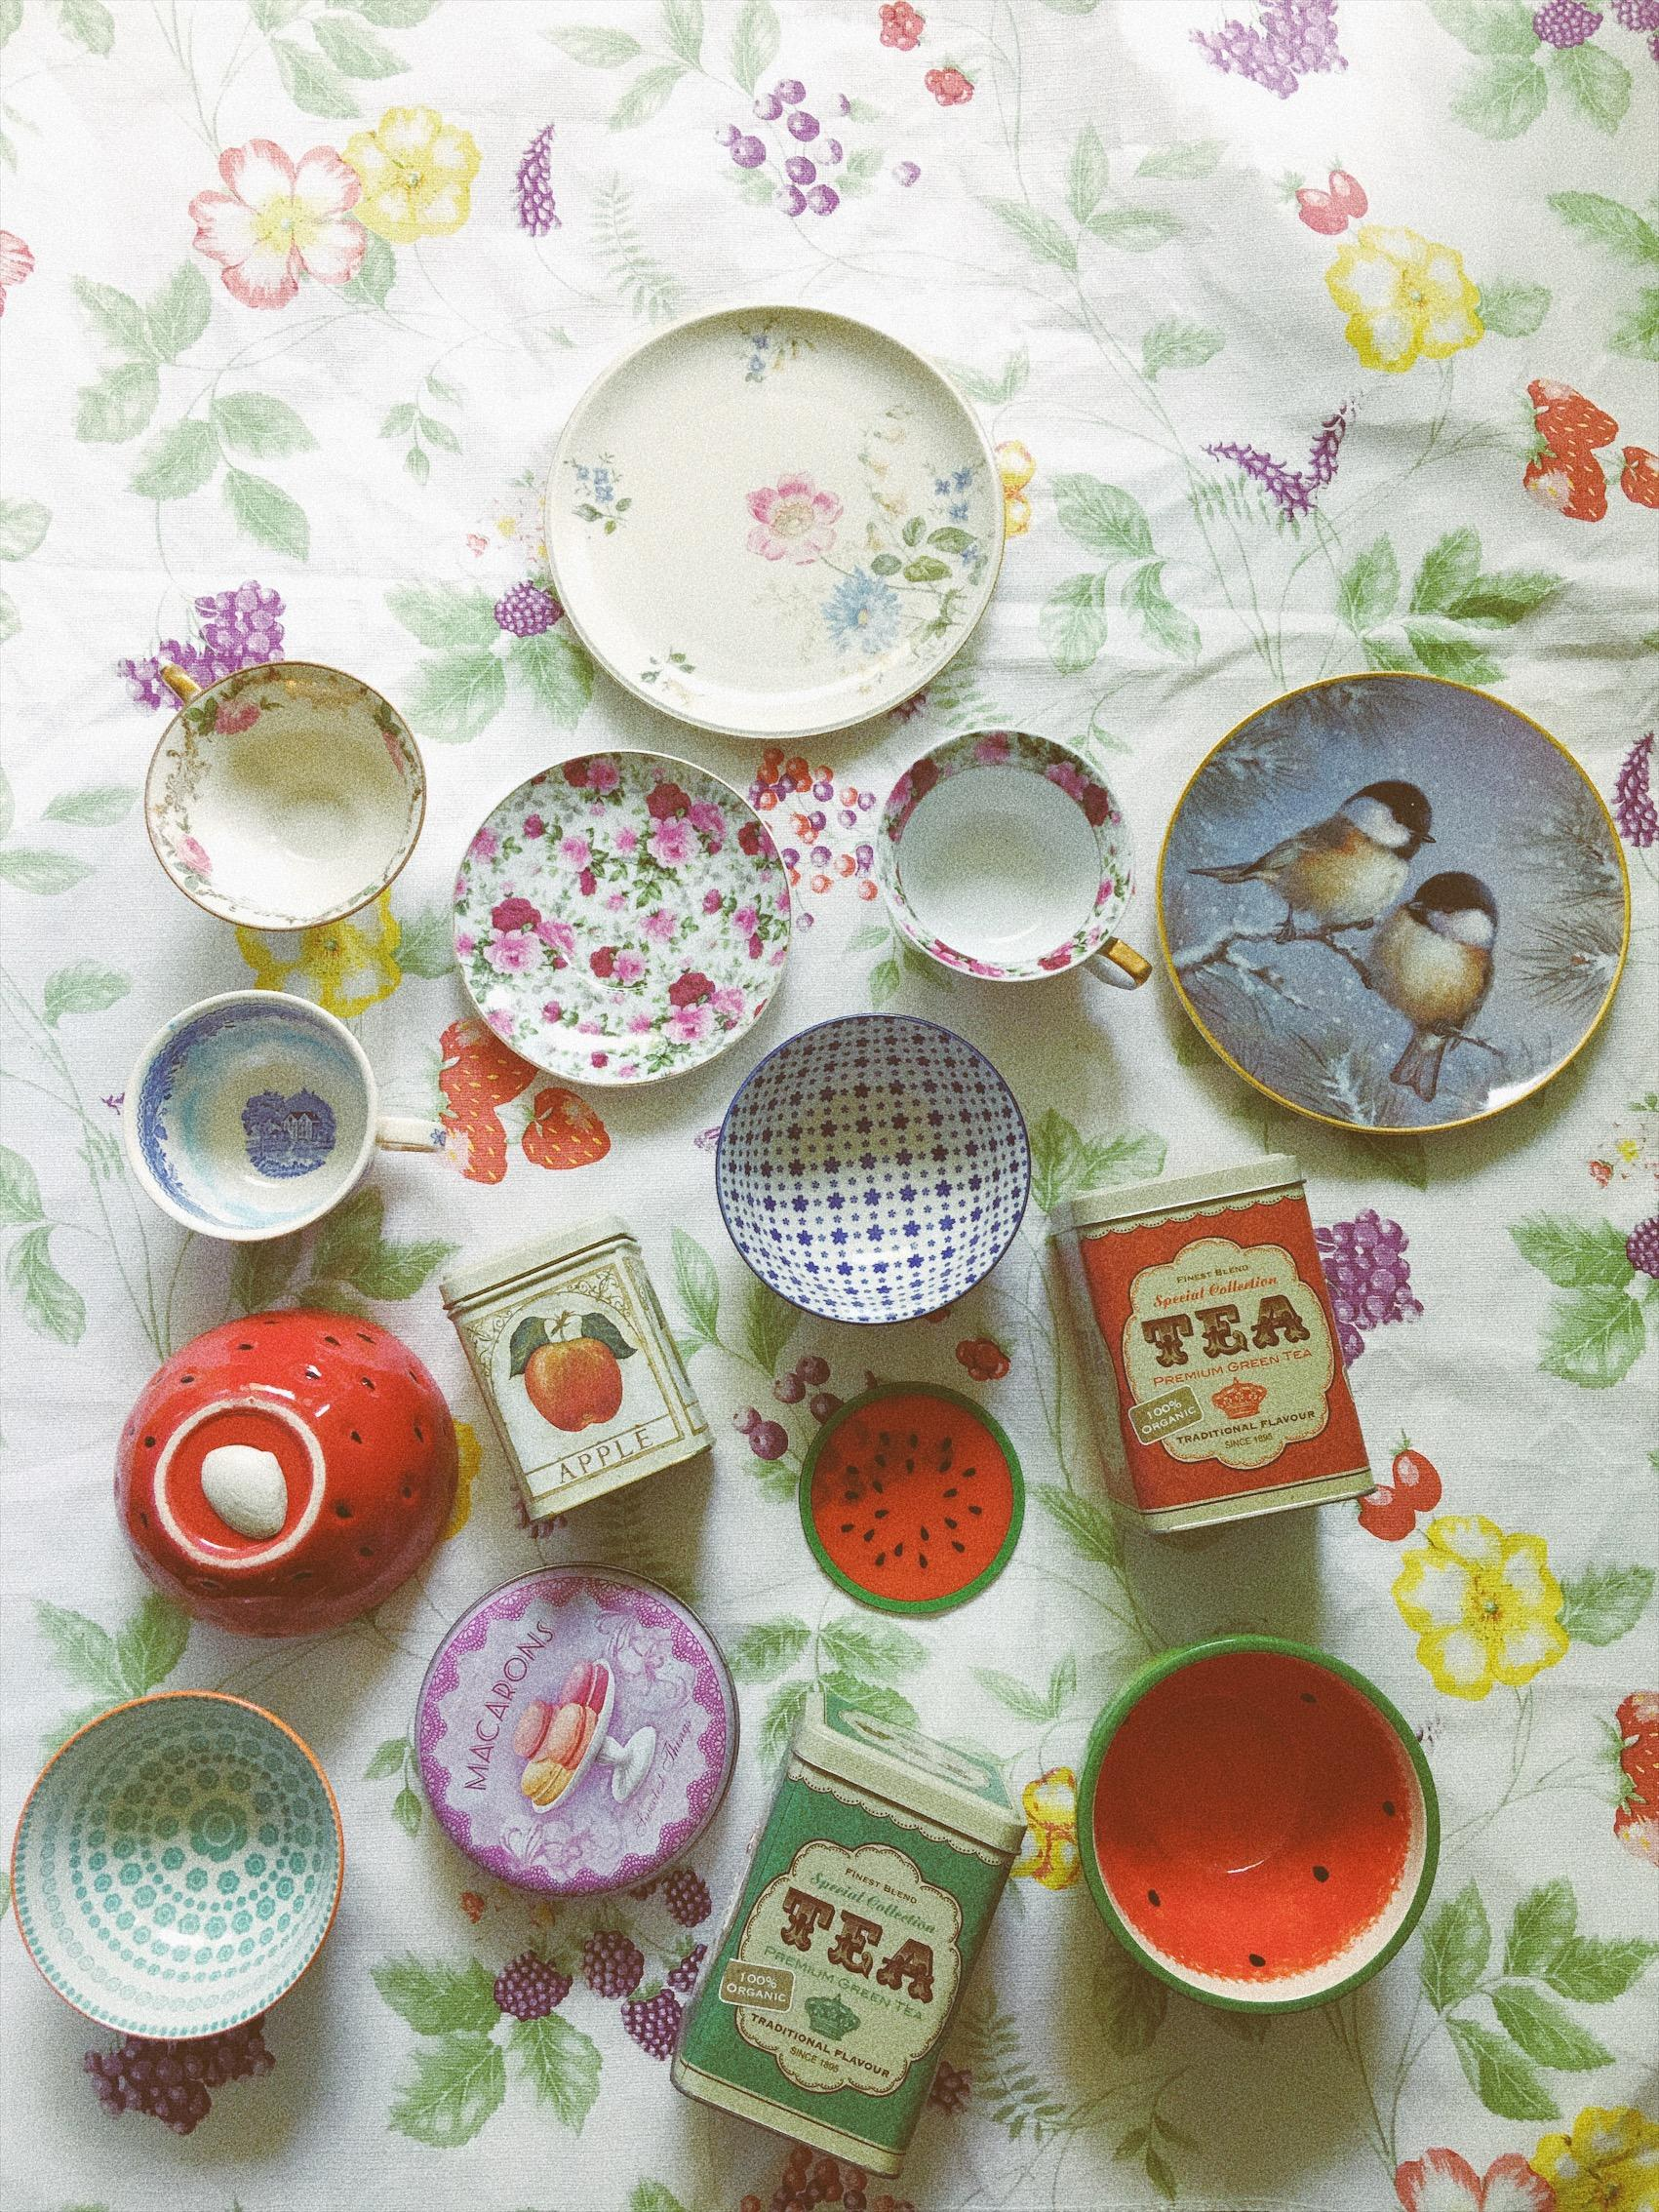 #flatlay#beauty#vintage#home#decor#deco